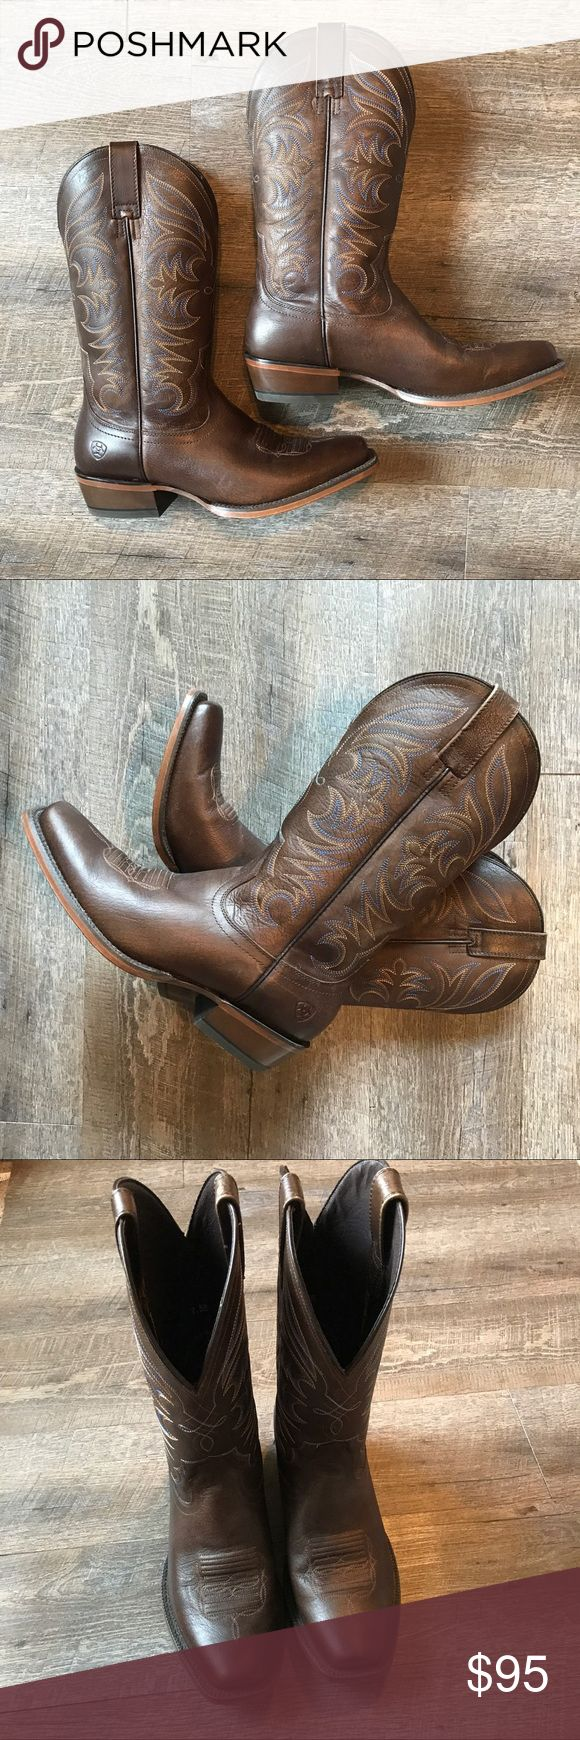 Brand New Ariat Cowboy Boots Brand new Ariat boots (worn once)! Size 9.5 EE. Ariat Shoes Cowboy & Western Boots